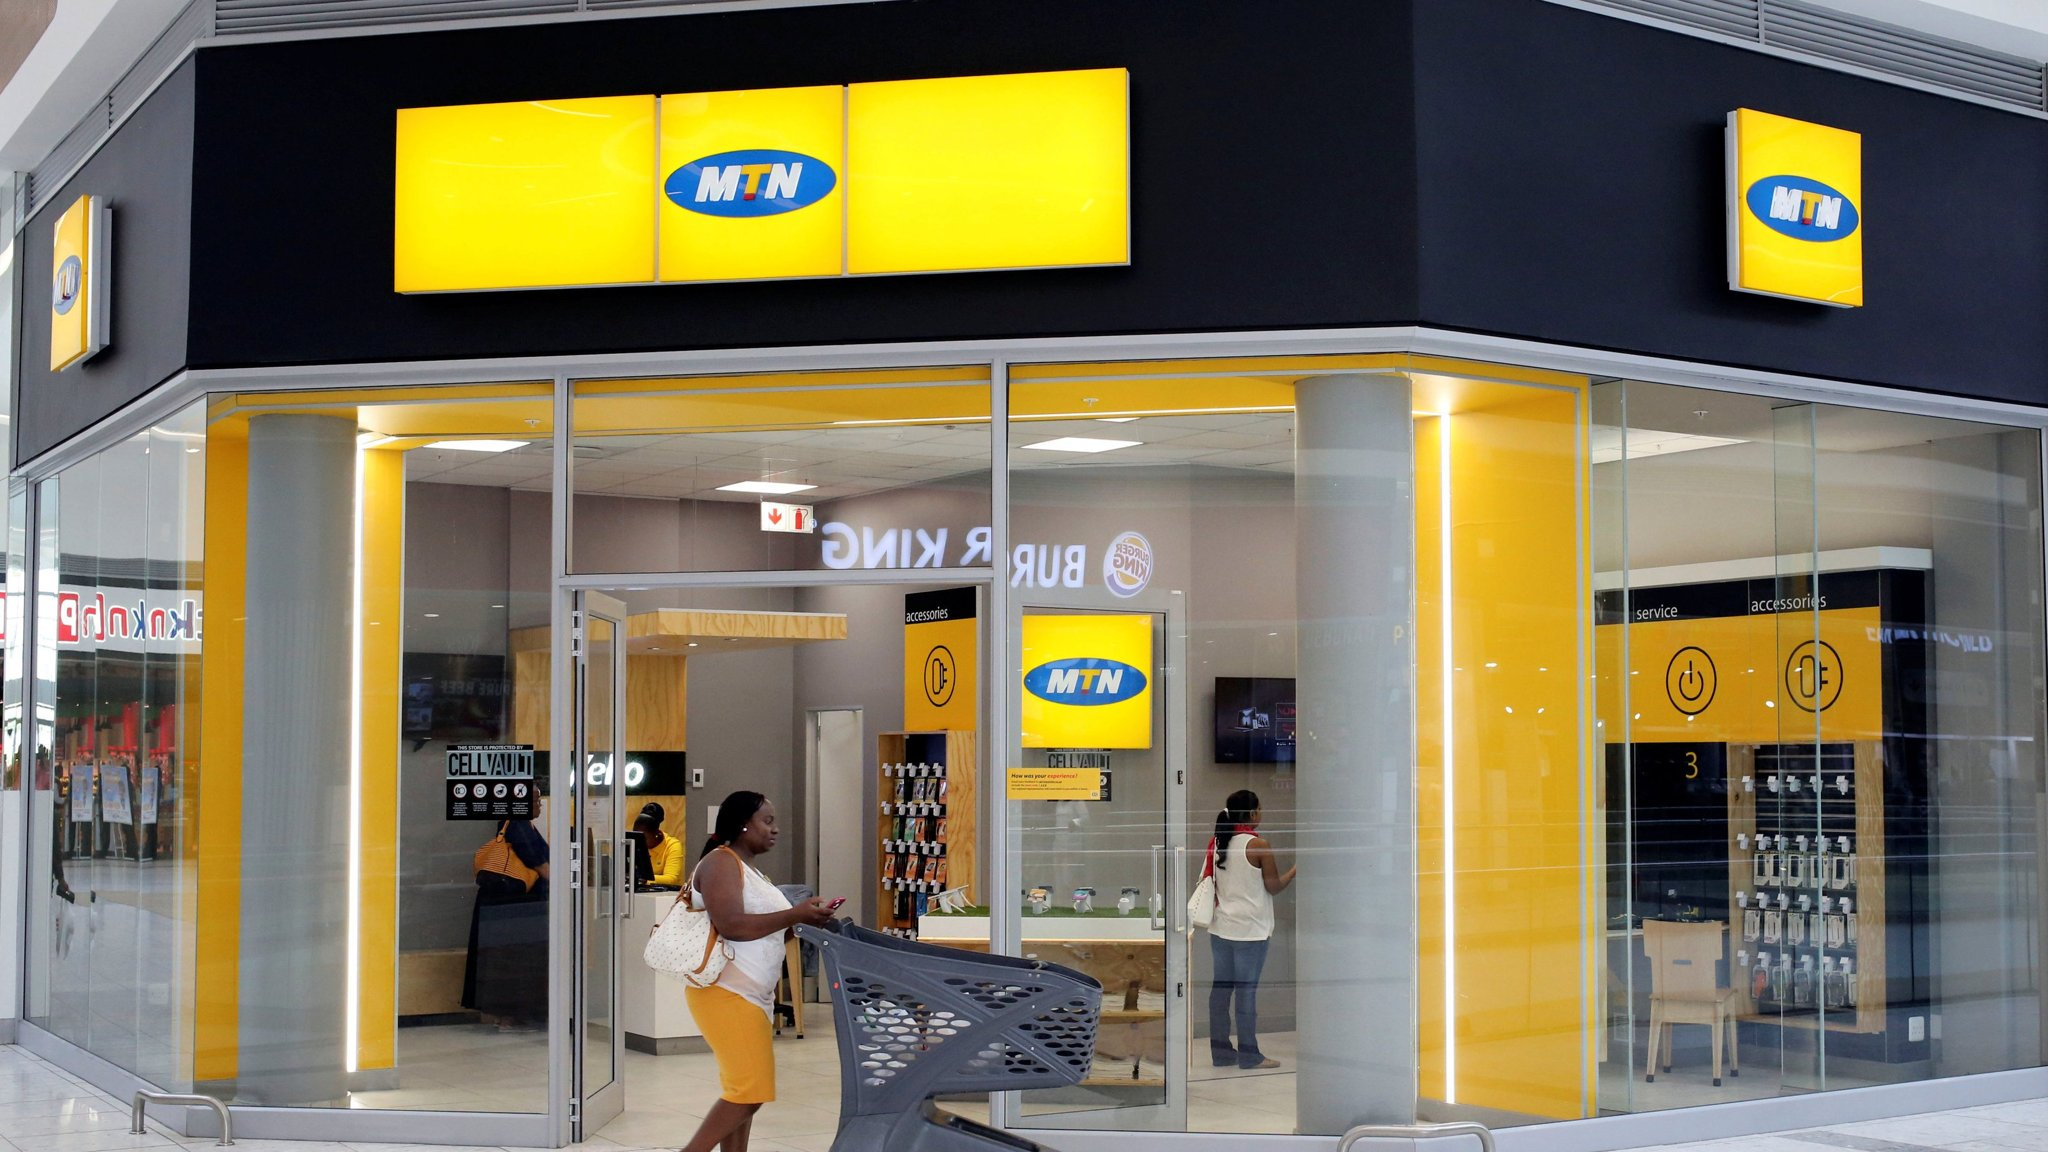 MTN Customer Care Number Nigeria